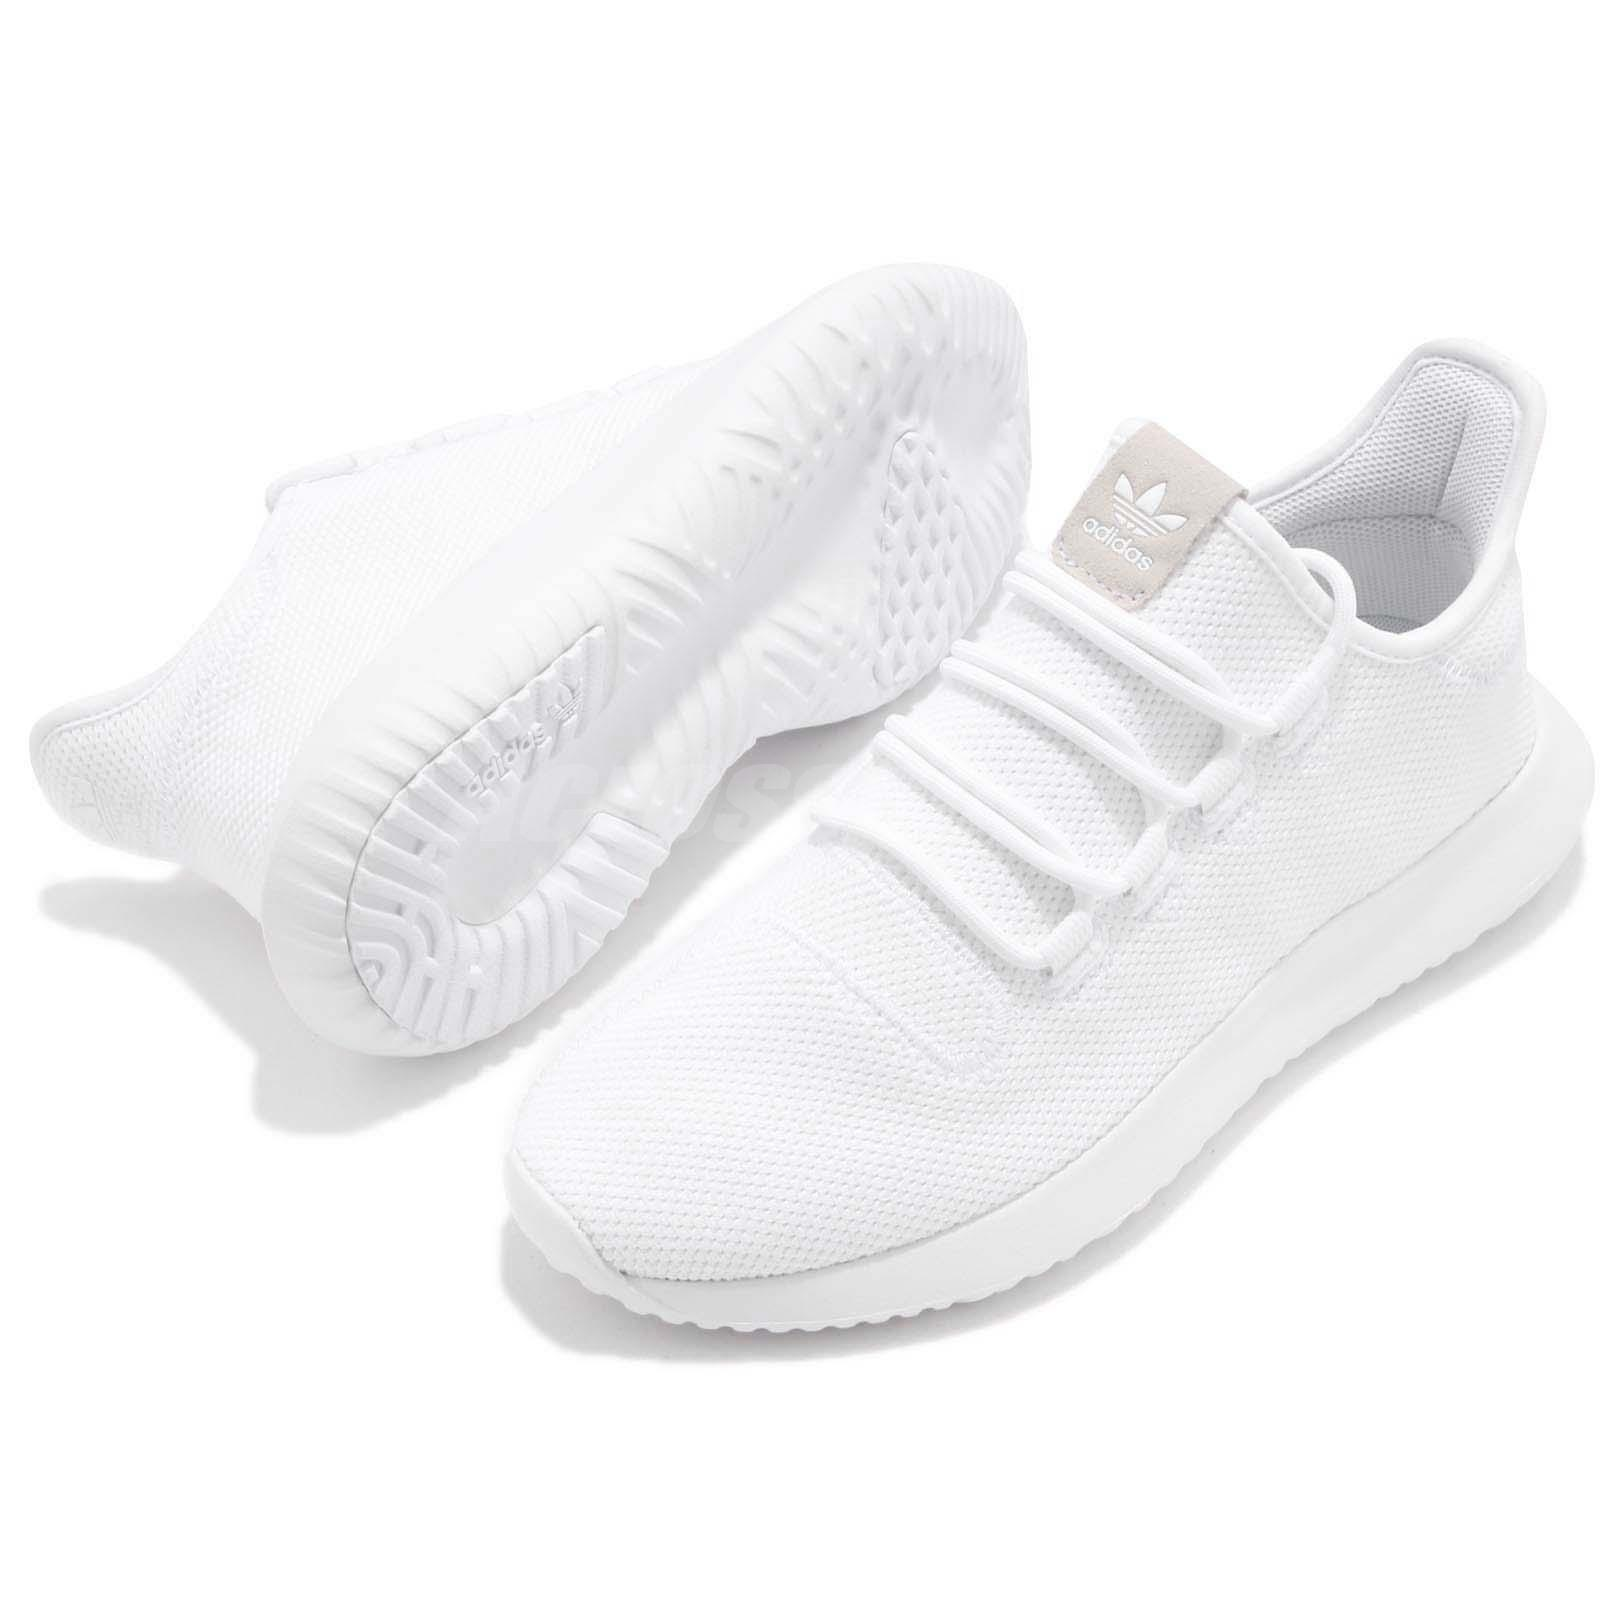 adidas cg4563 buy clothes shoes online